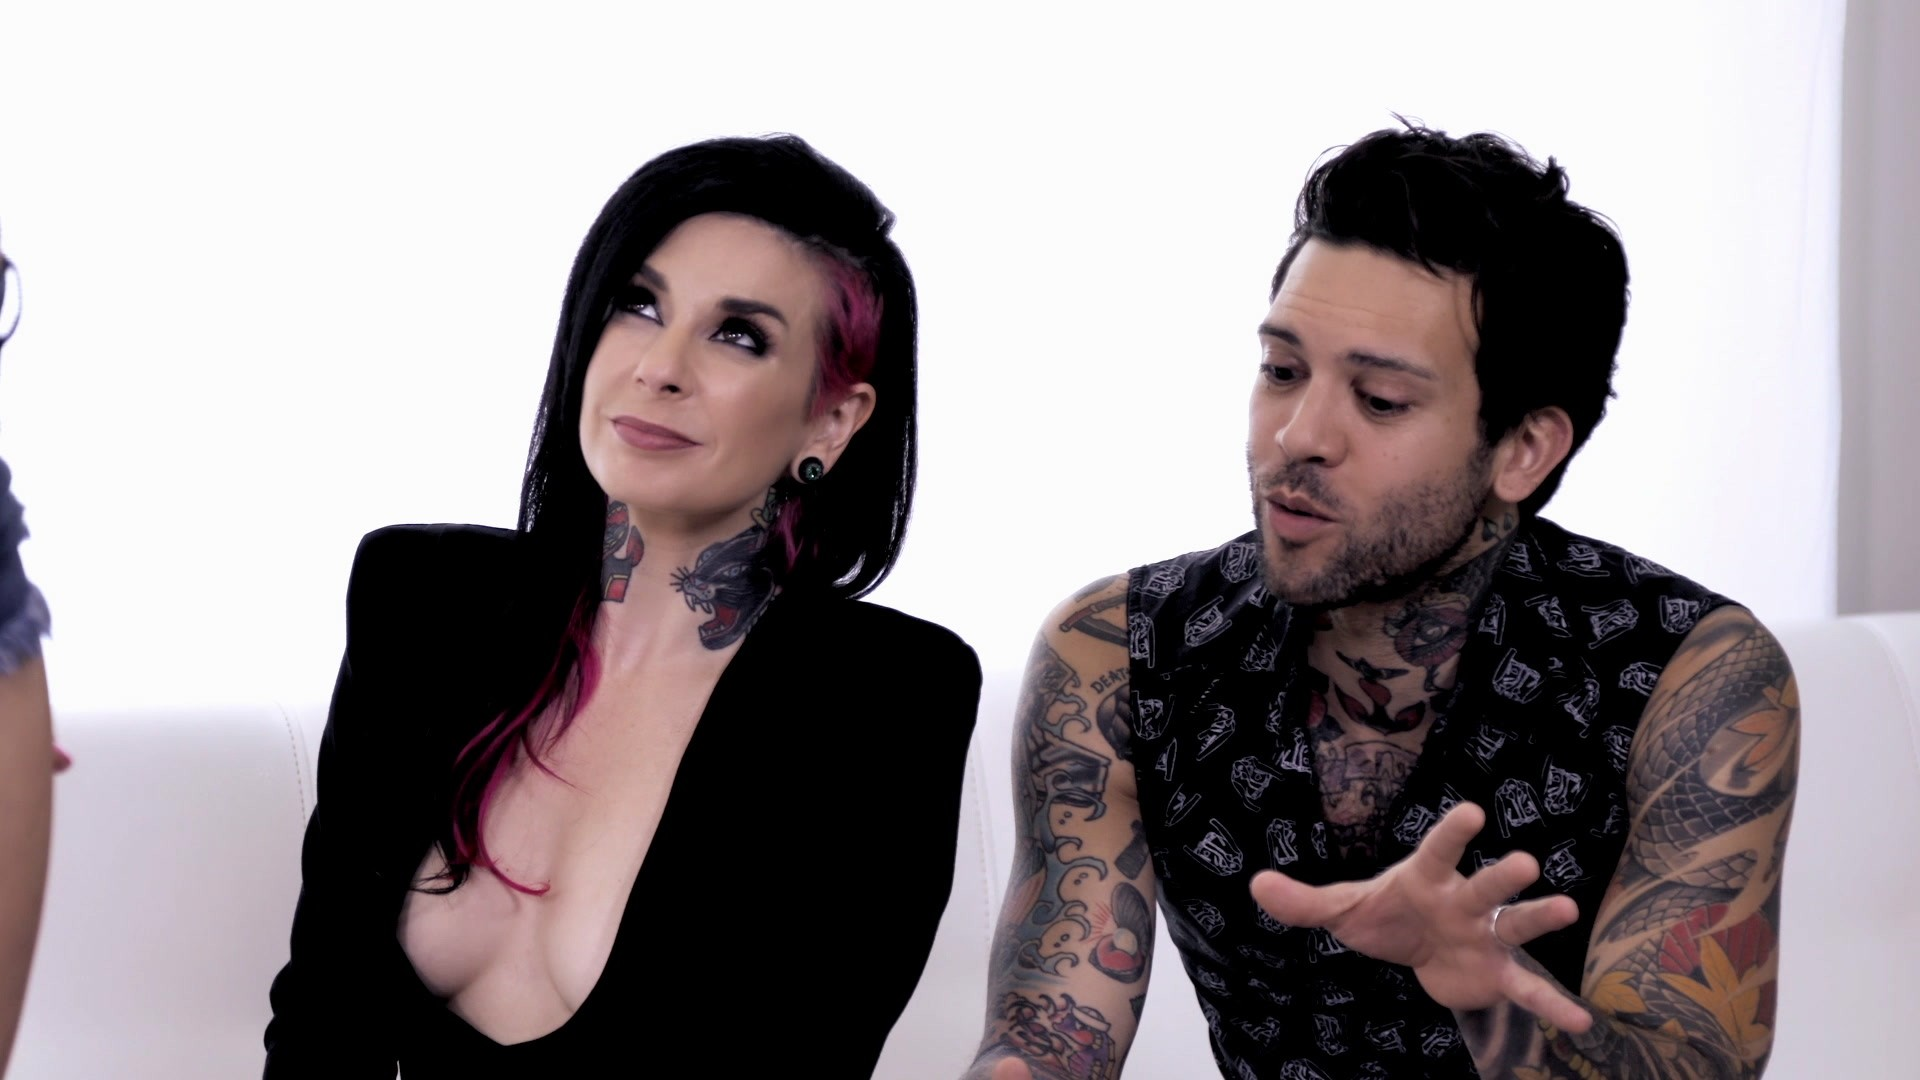 Scene with Joanna Angel, Mia Malkova and Small Hands - image 3 out of 20